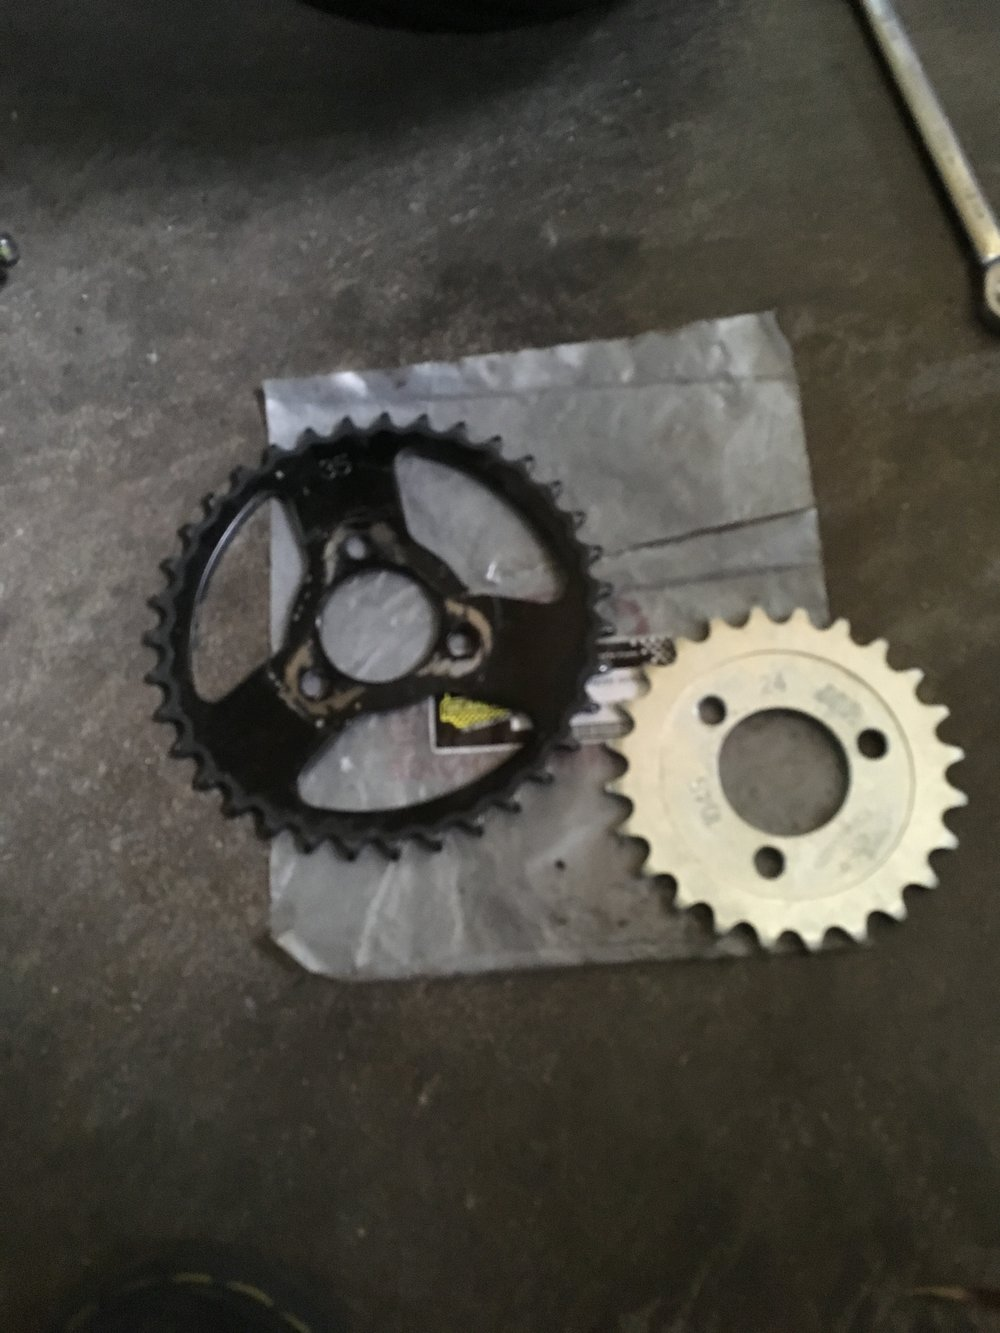 Trading out the 35T for a 24T rear sprocket. Some off the line acceleration will be lost, but these bikes get to top speed in a short distance, so I'm thinking top speed will be the determining factor.